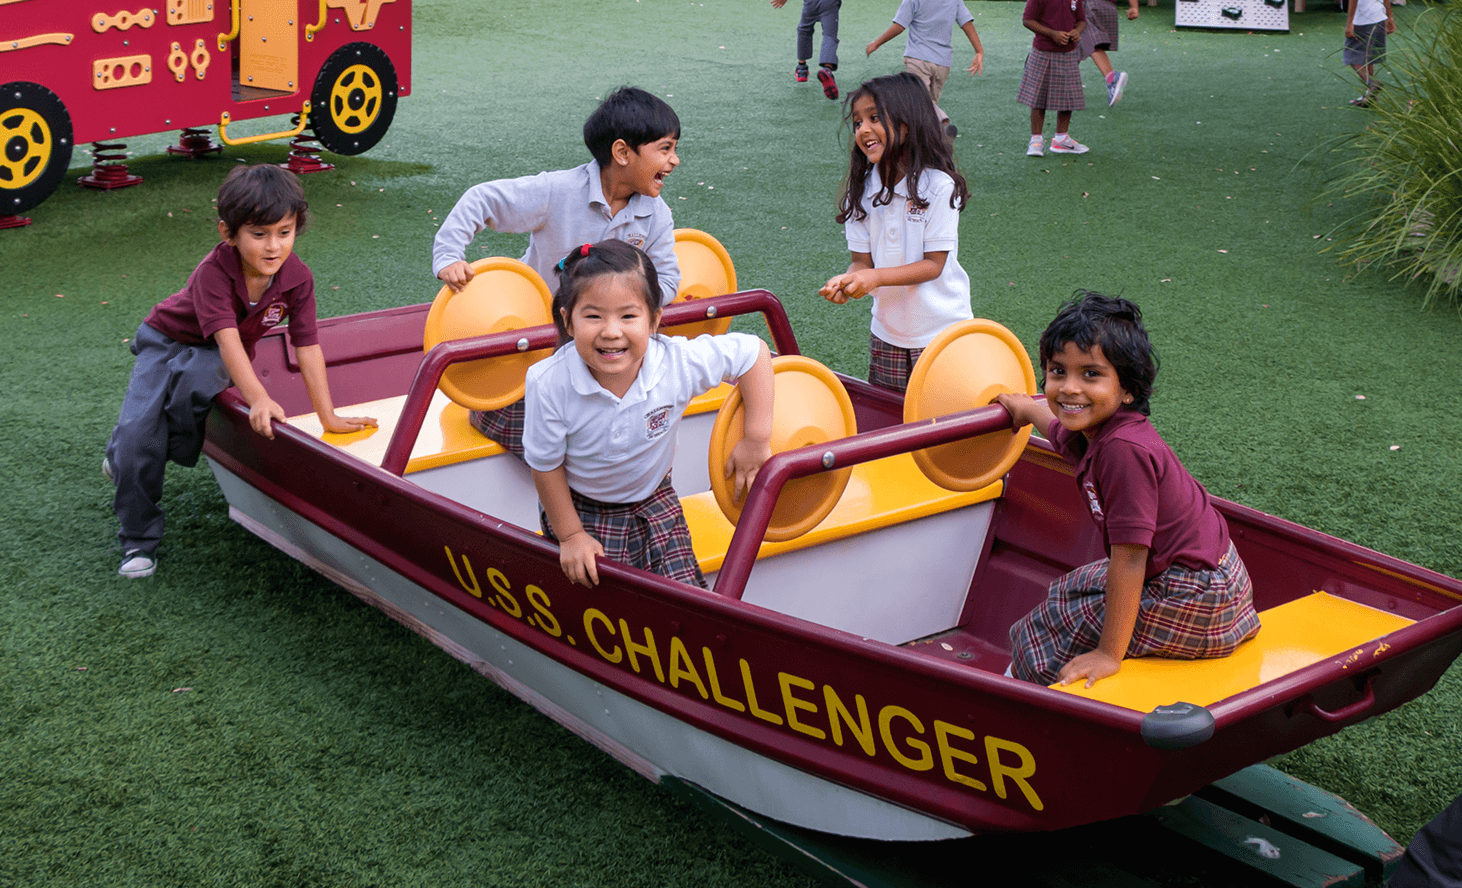 Playground Boat | Challenger School - Avery Ranch | Private School In Austin, Texas